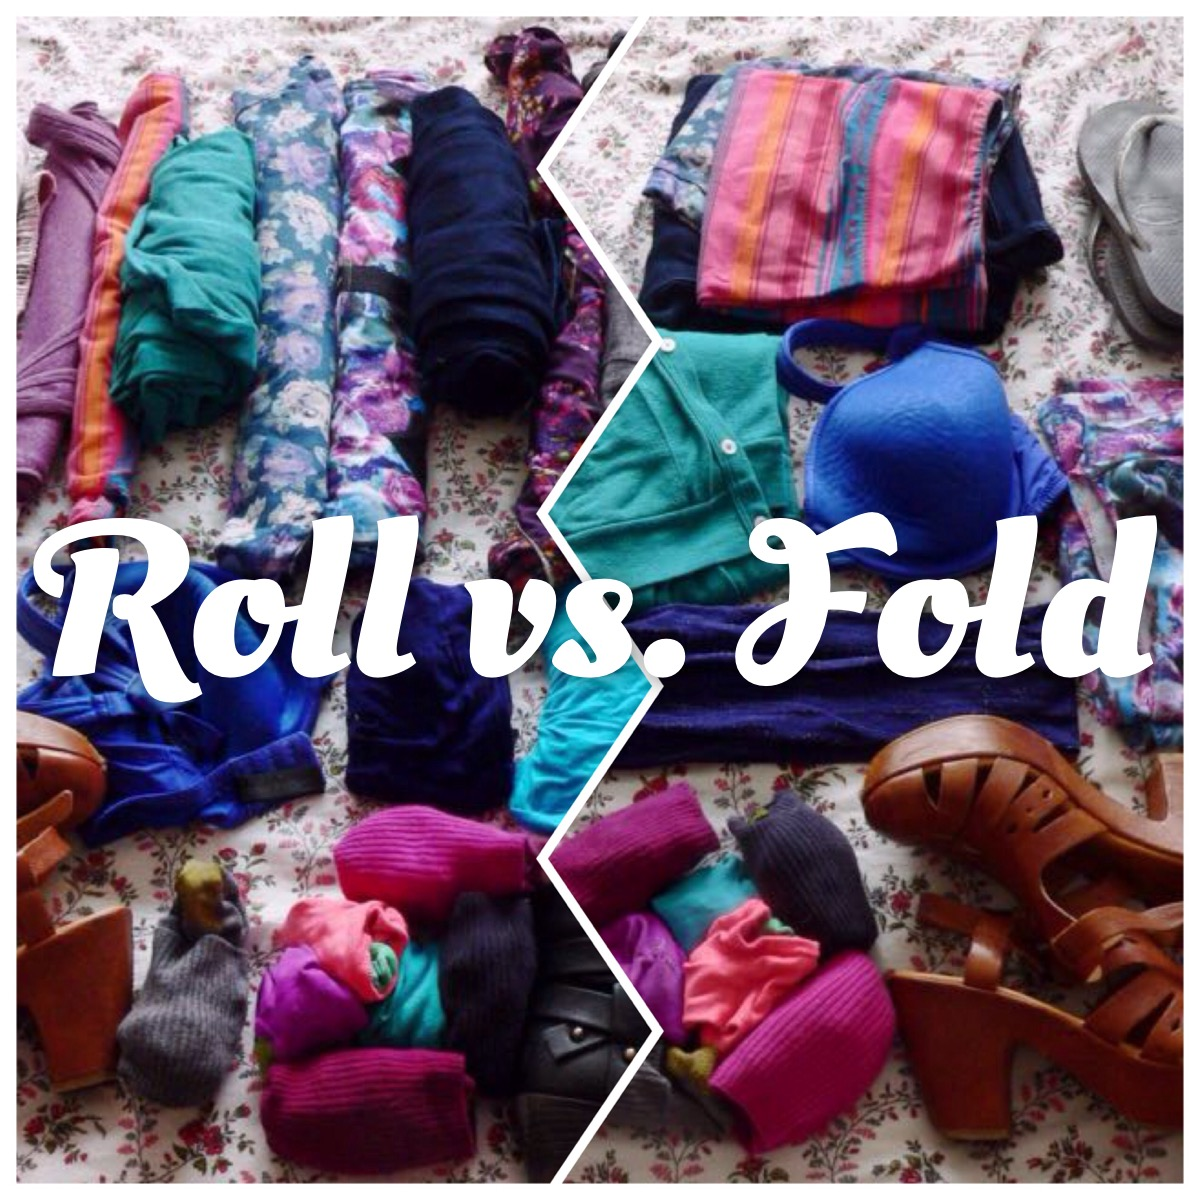 Best way to fold clothes for suitcase - I Ve Pretty Much Always Folded My Clothes For Travel Because Well That S Just What I Always Did I Pulled Them From My Dresser Drawers Placed Them In A